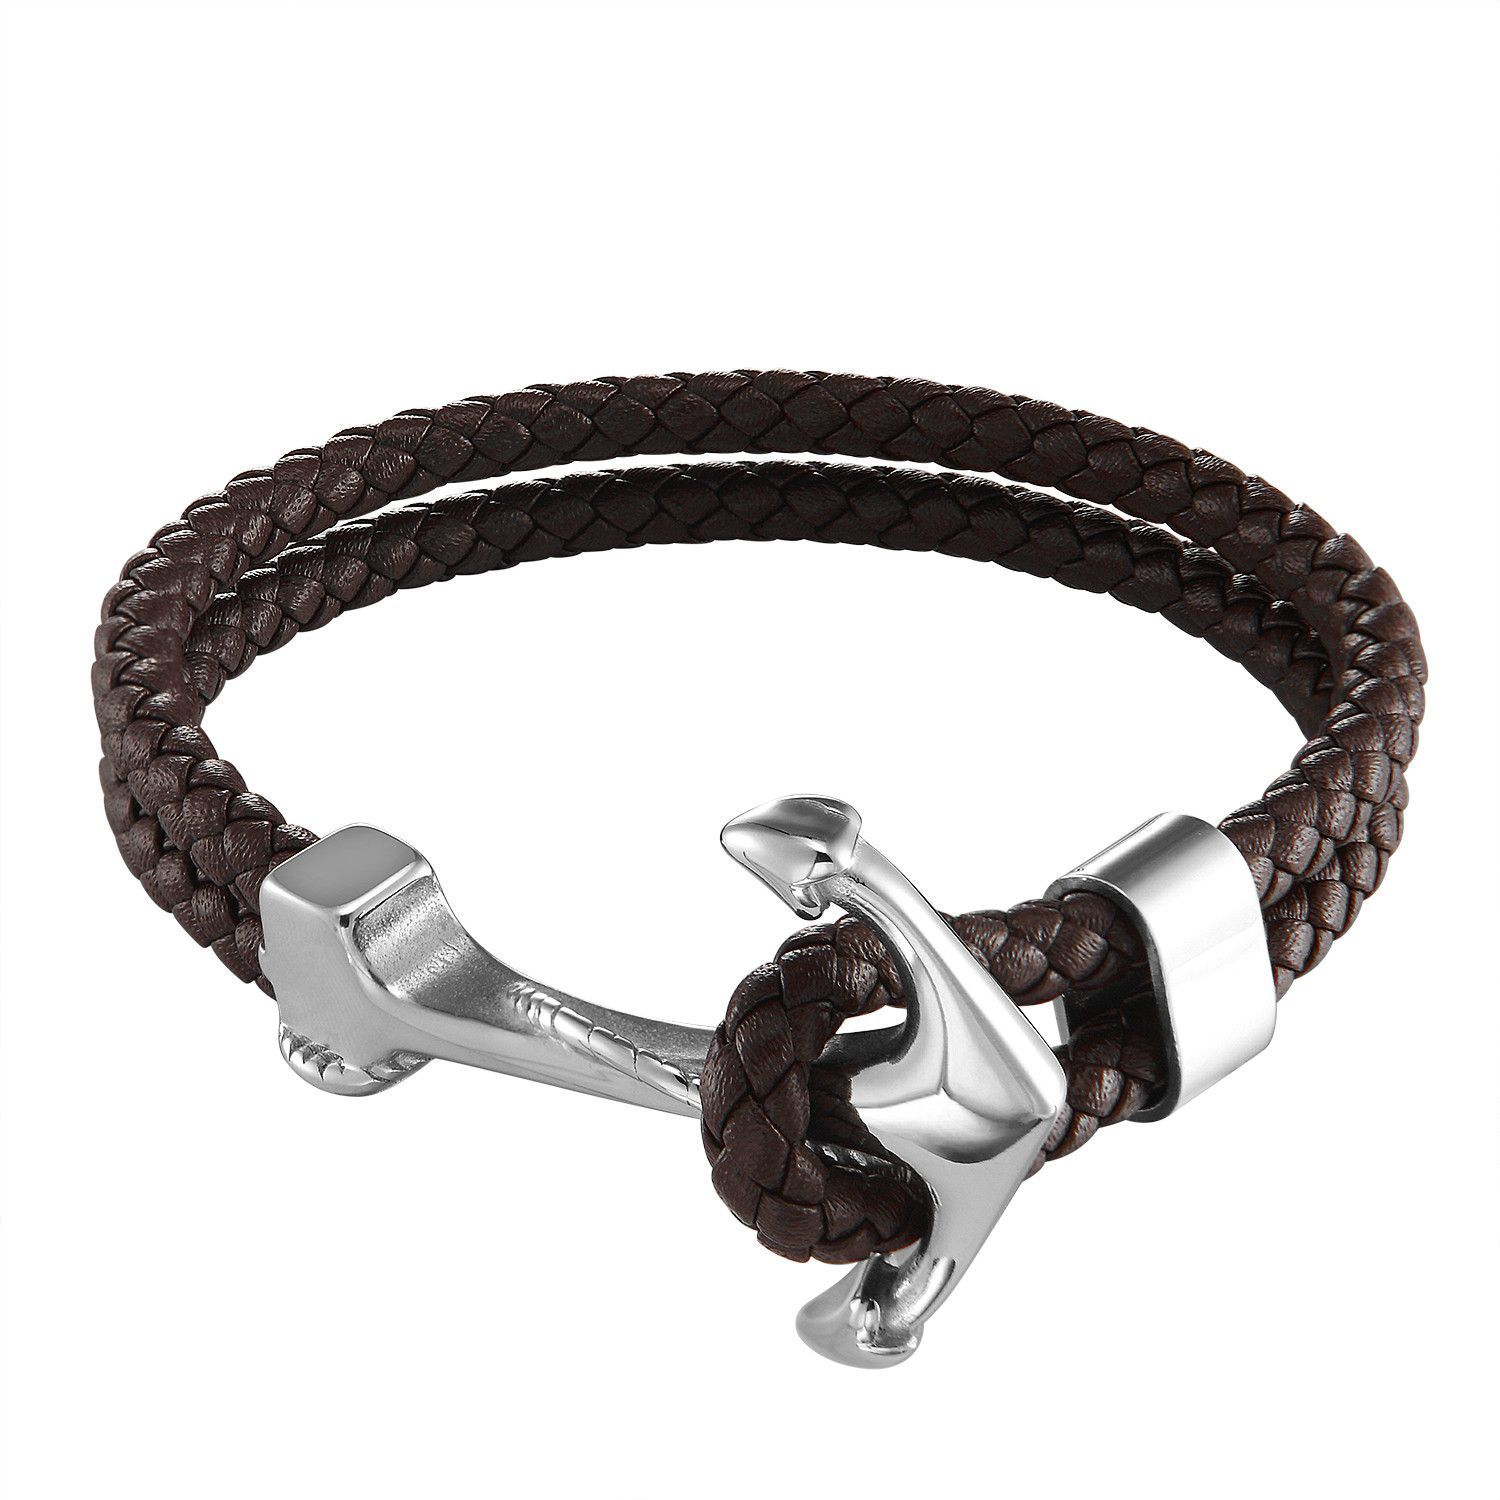 Ship anchor design bracelet brown double braided leather wrist band